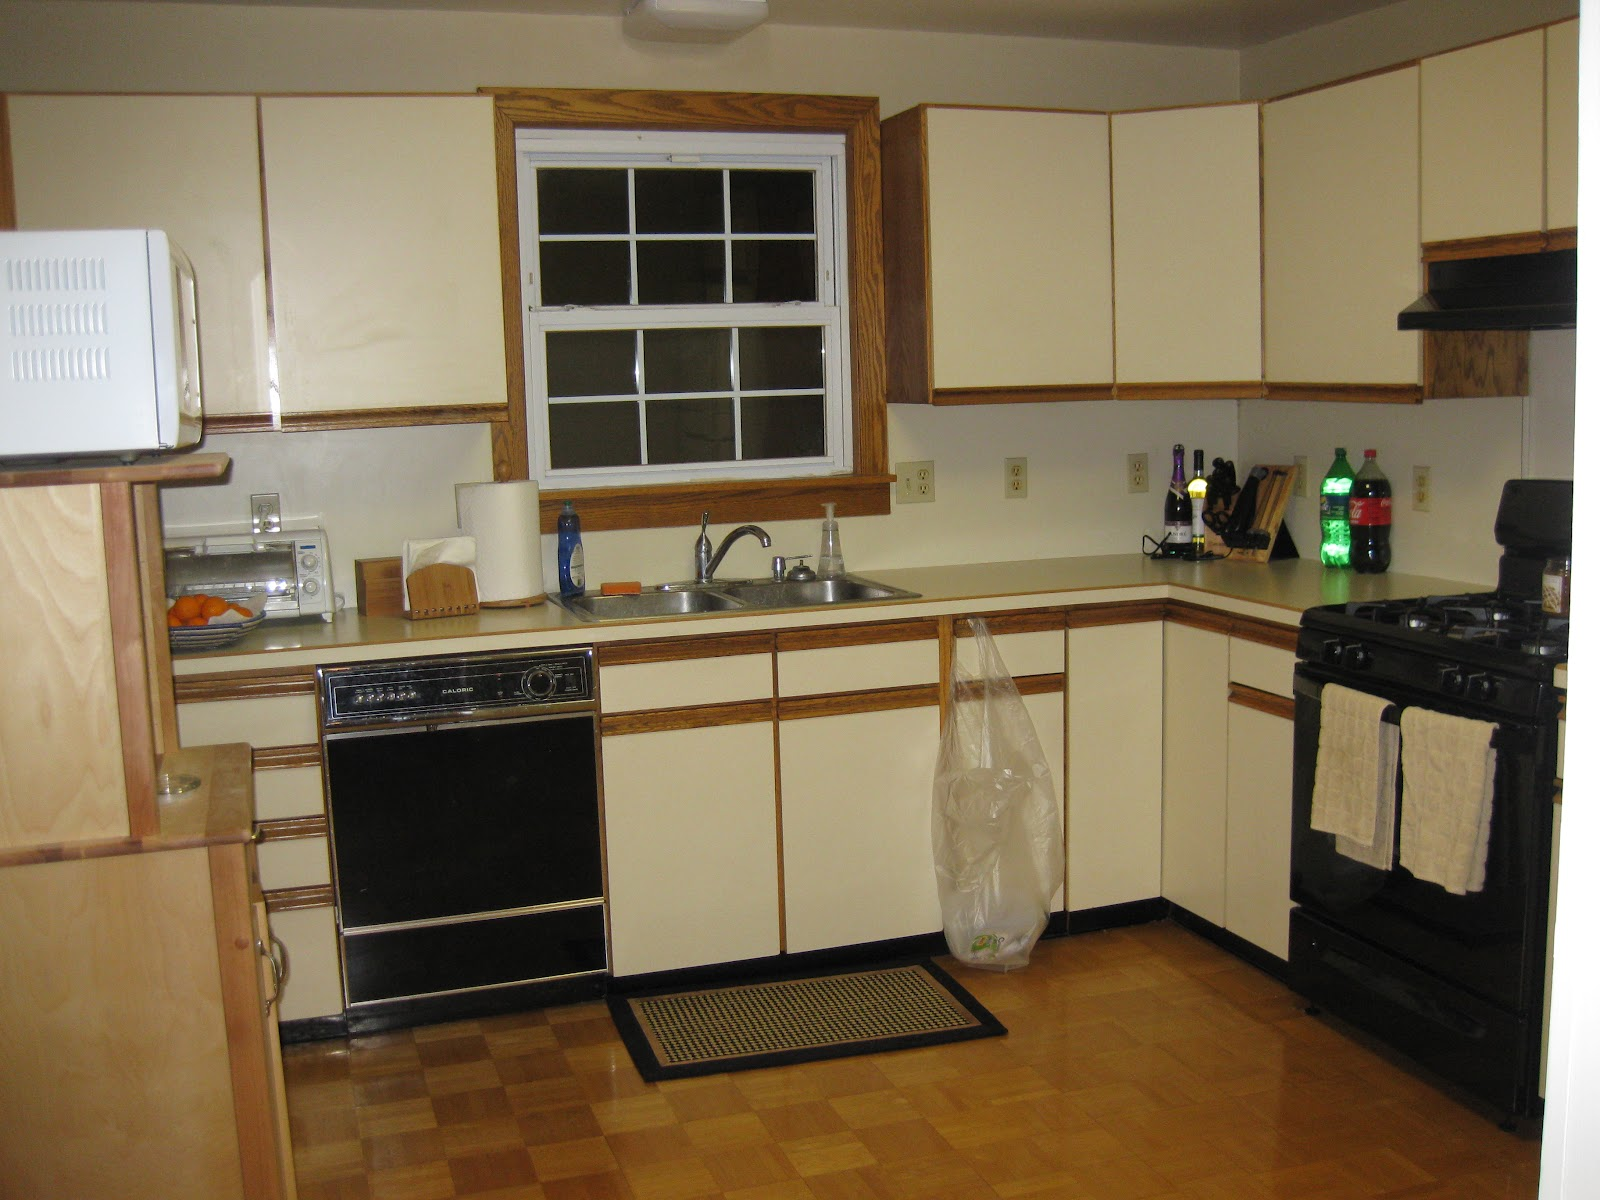 Refinish laminate kitchen cabinets refinishing laminate for Laminate cabinets